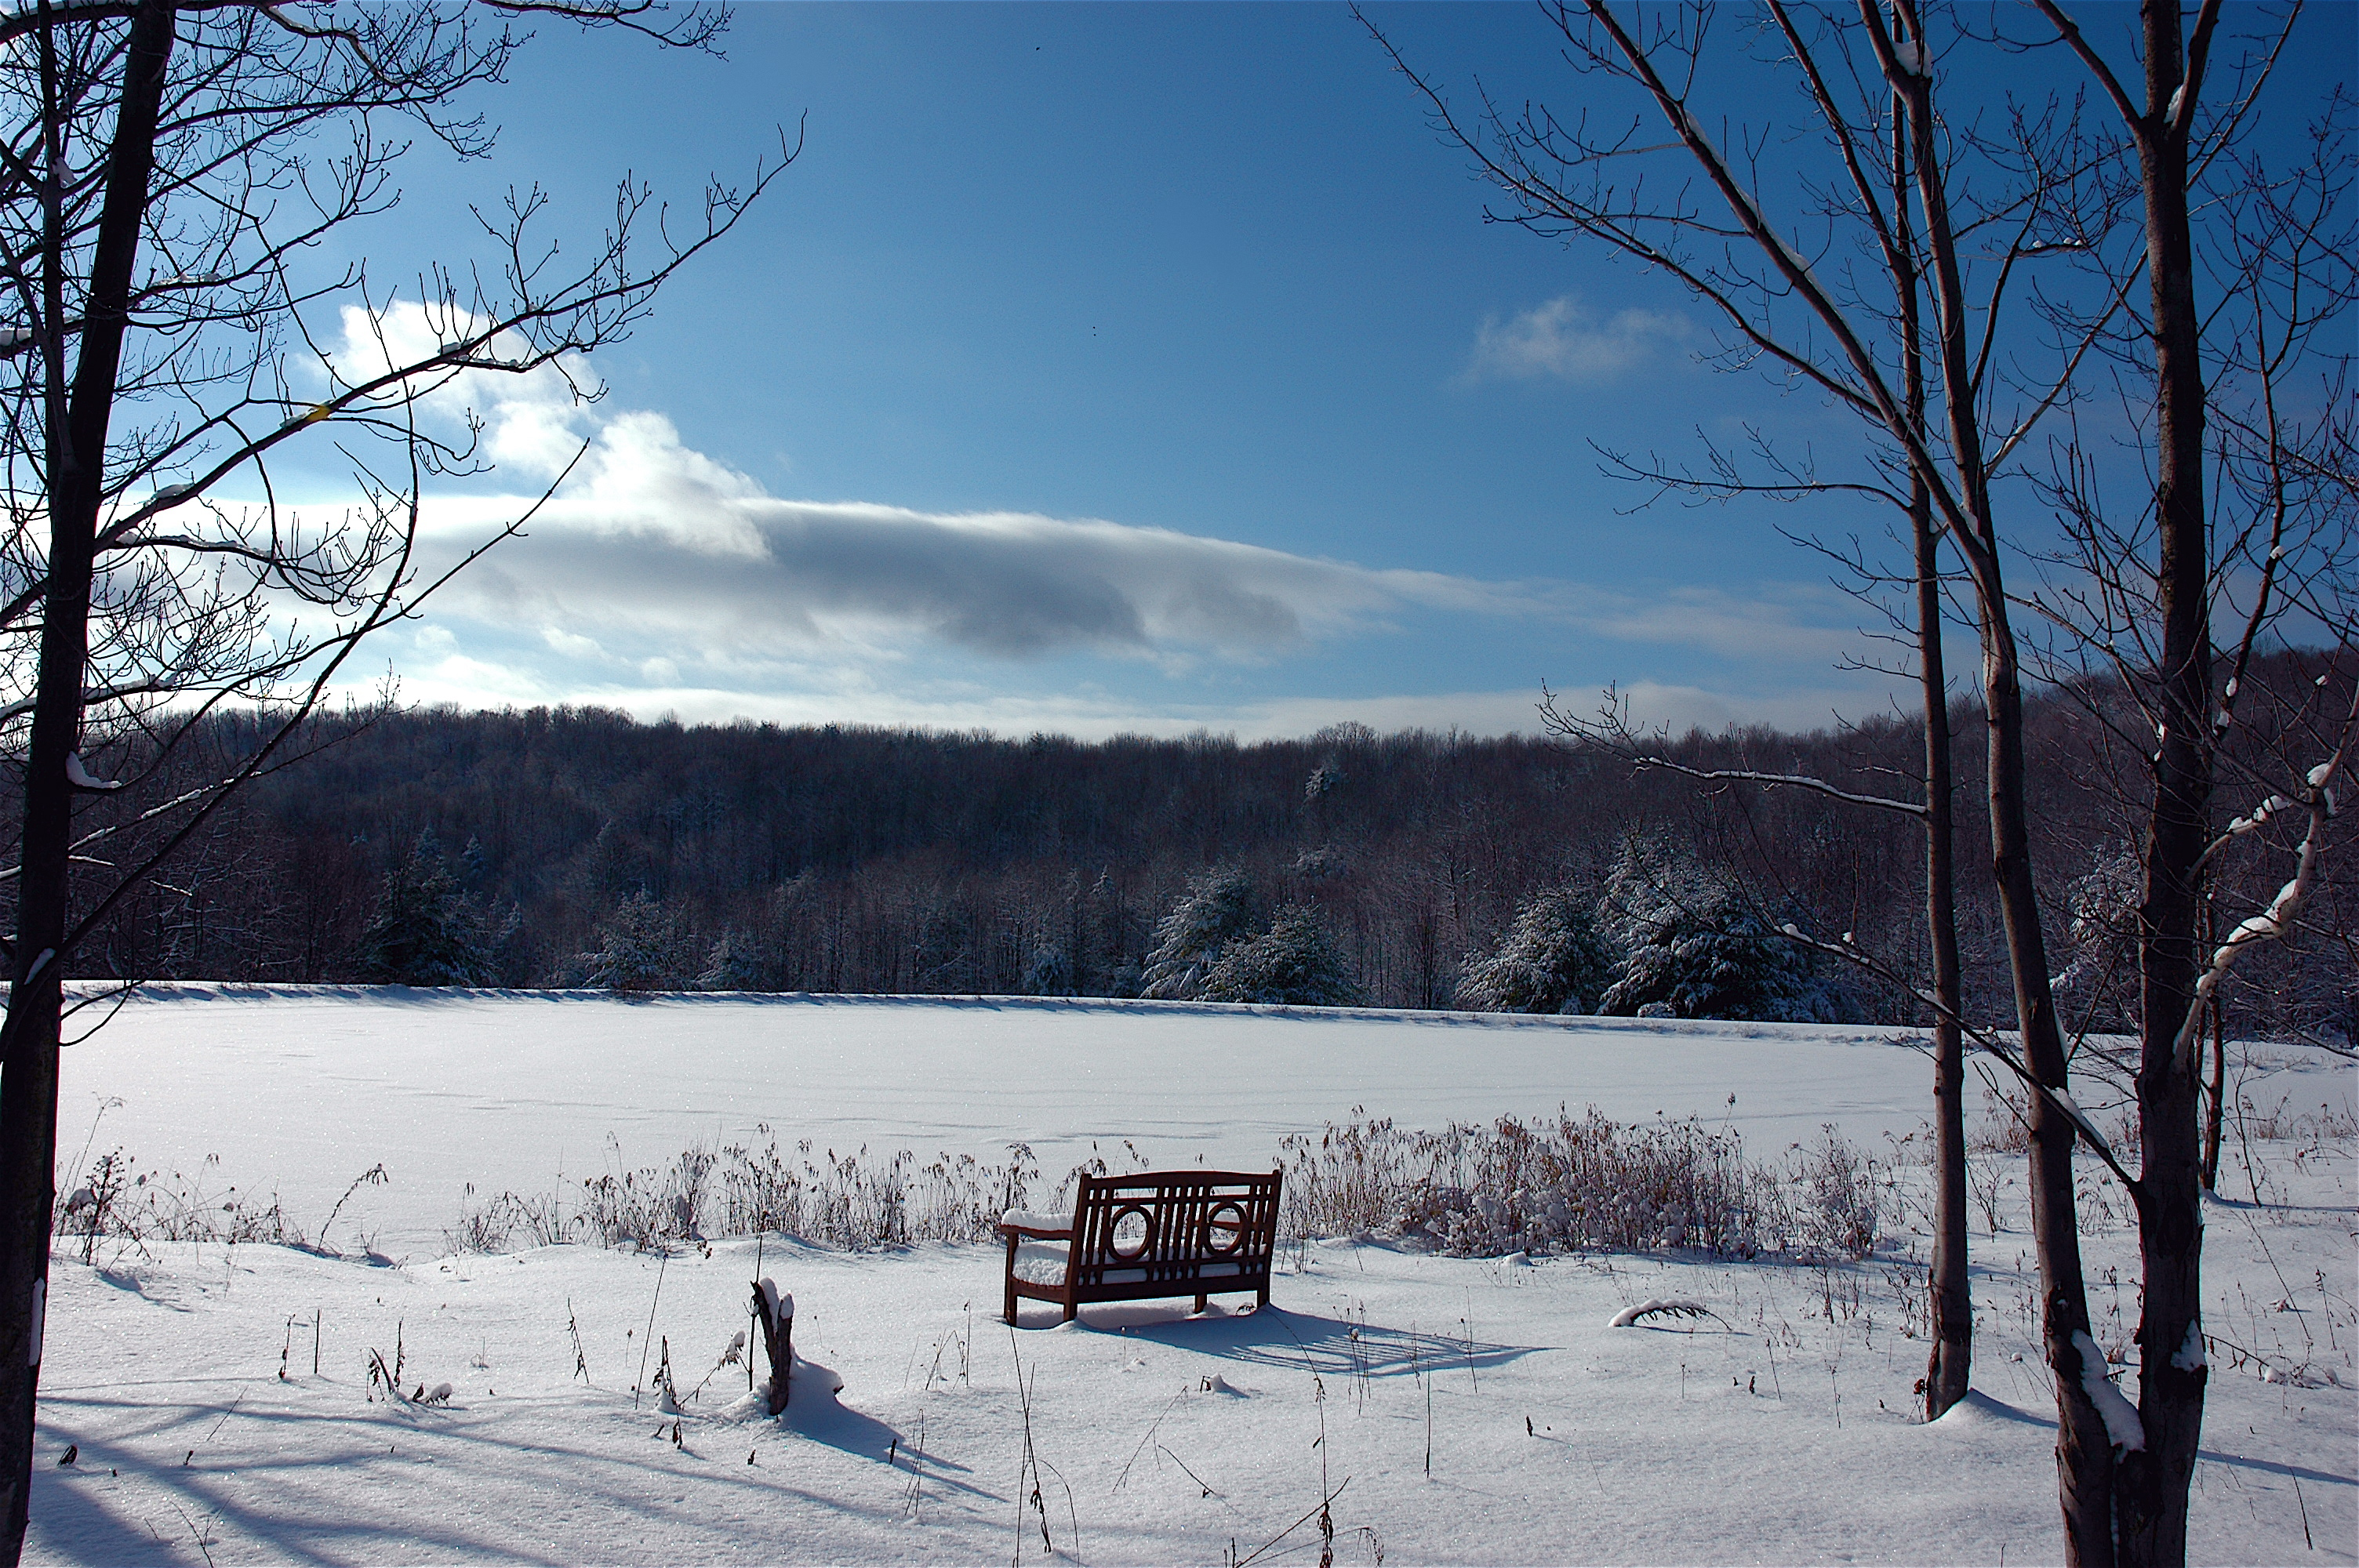 loh bench near pond during winter